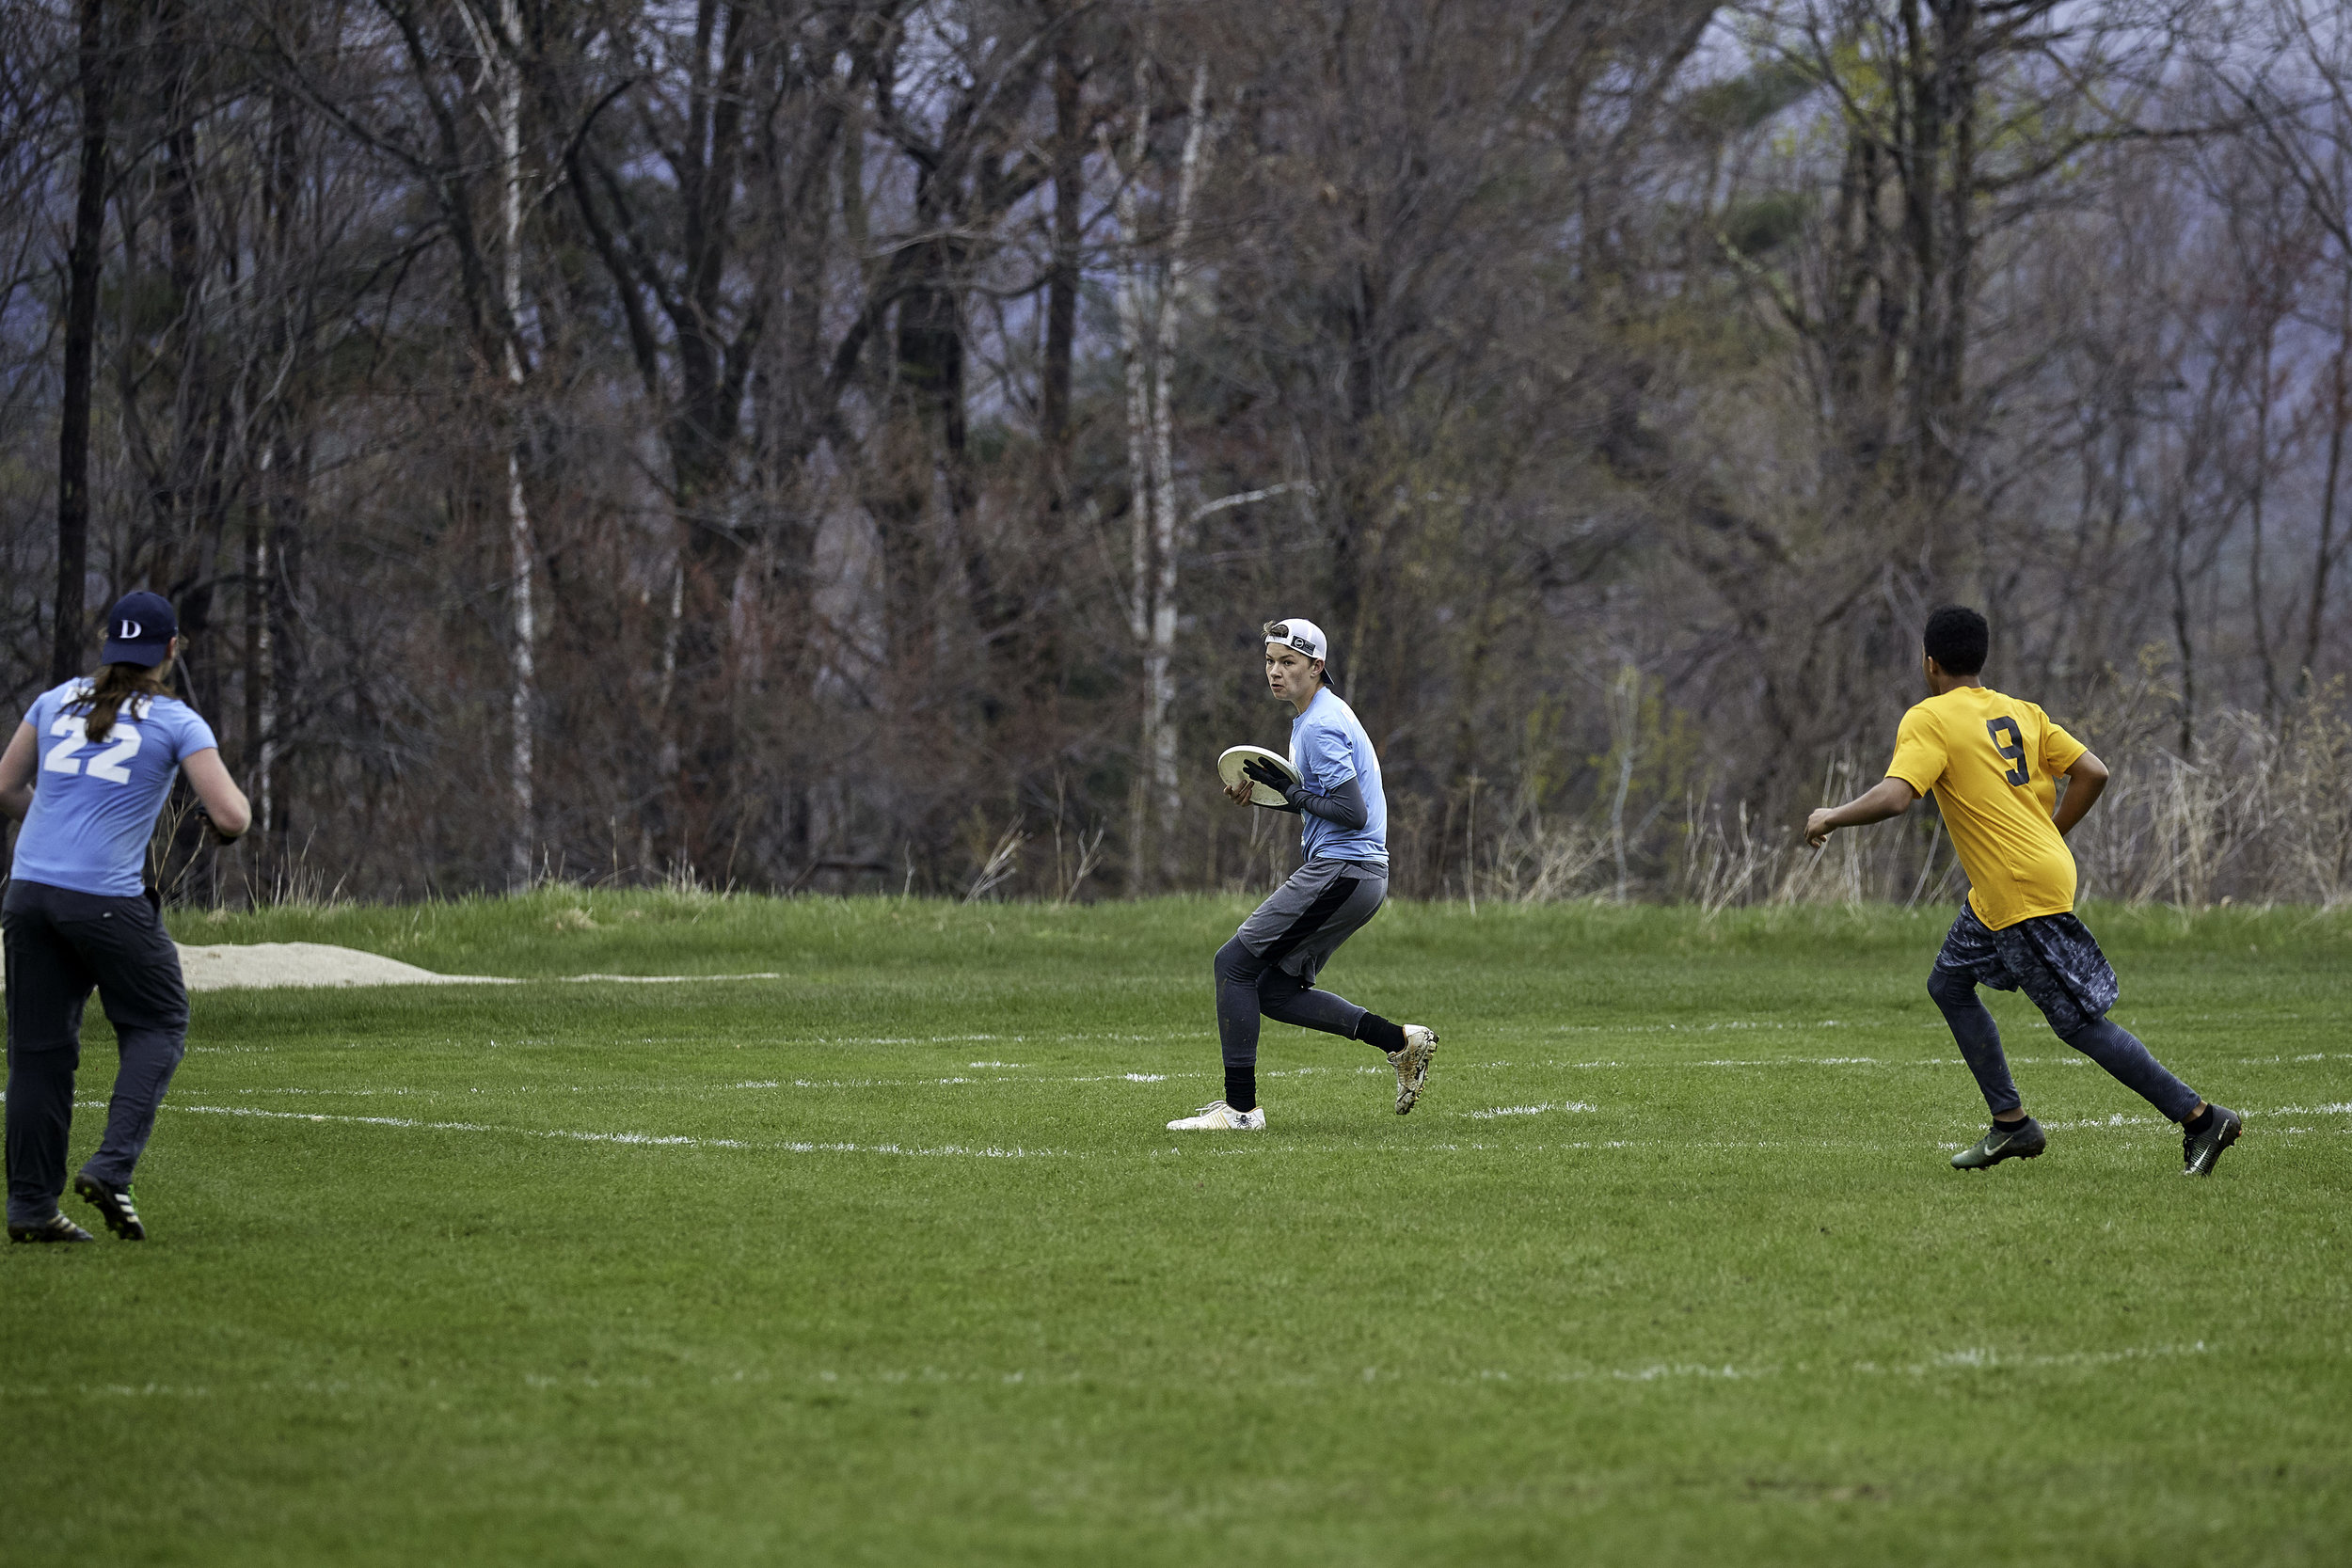 Ultimate Frisbee vs. Eagle Hill School - May 3, 2019 - 188484.jpg